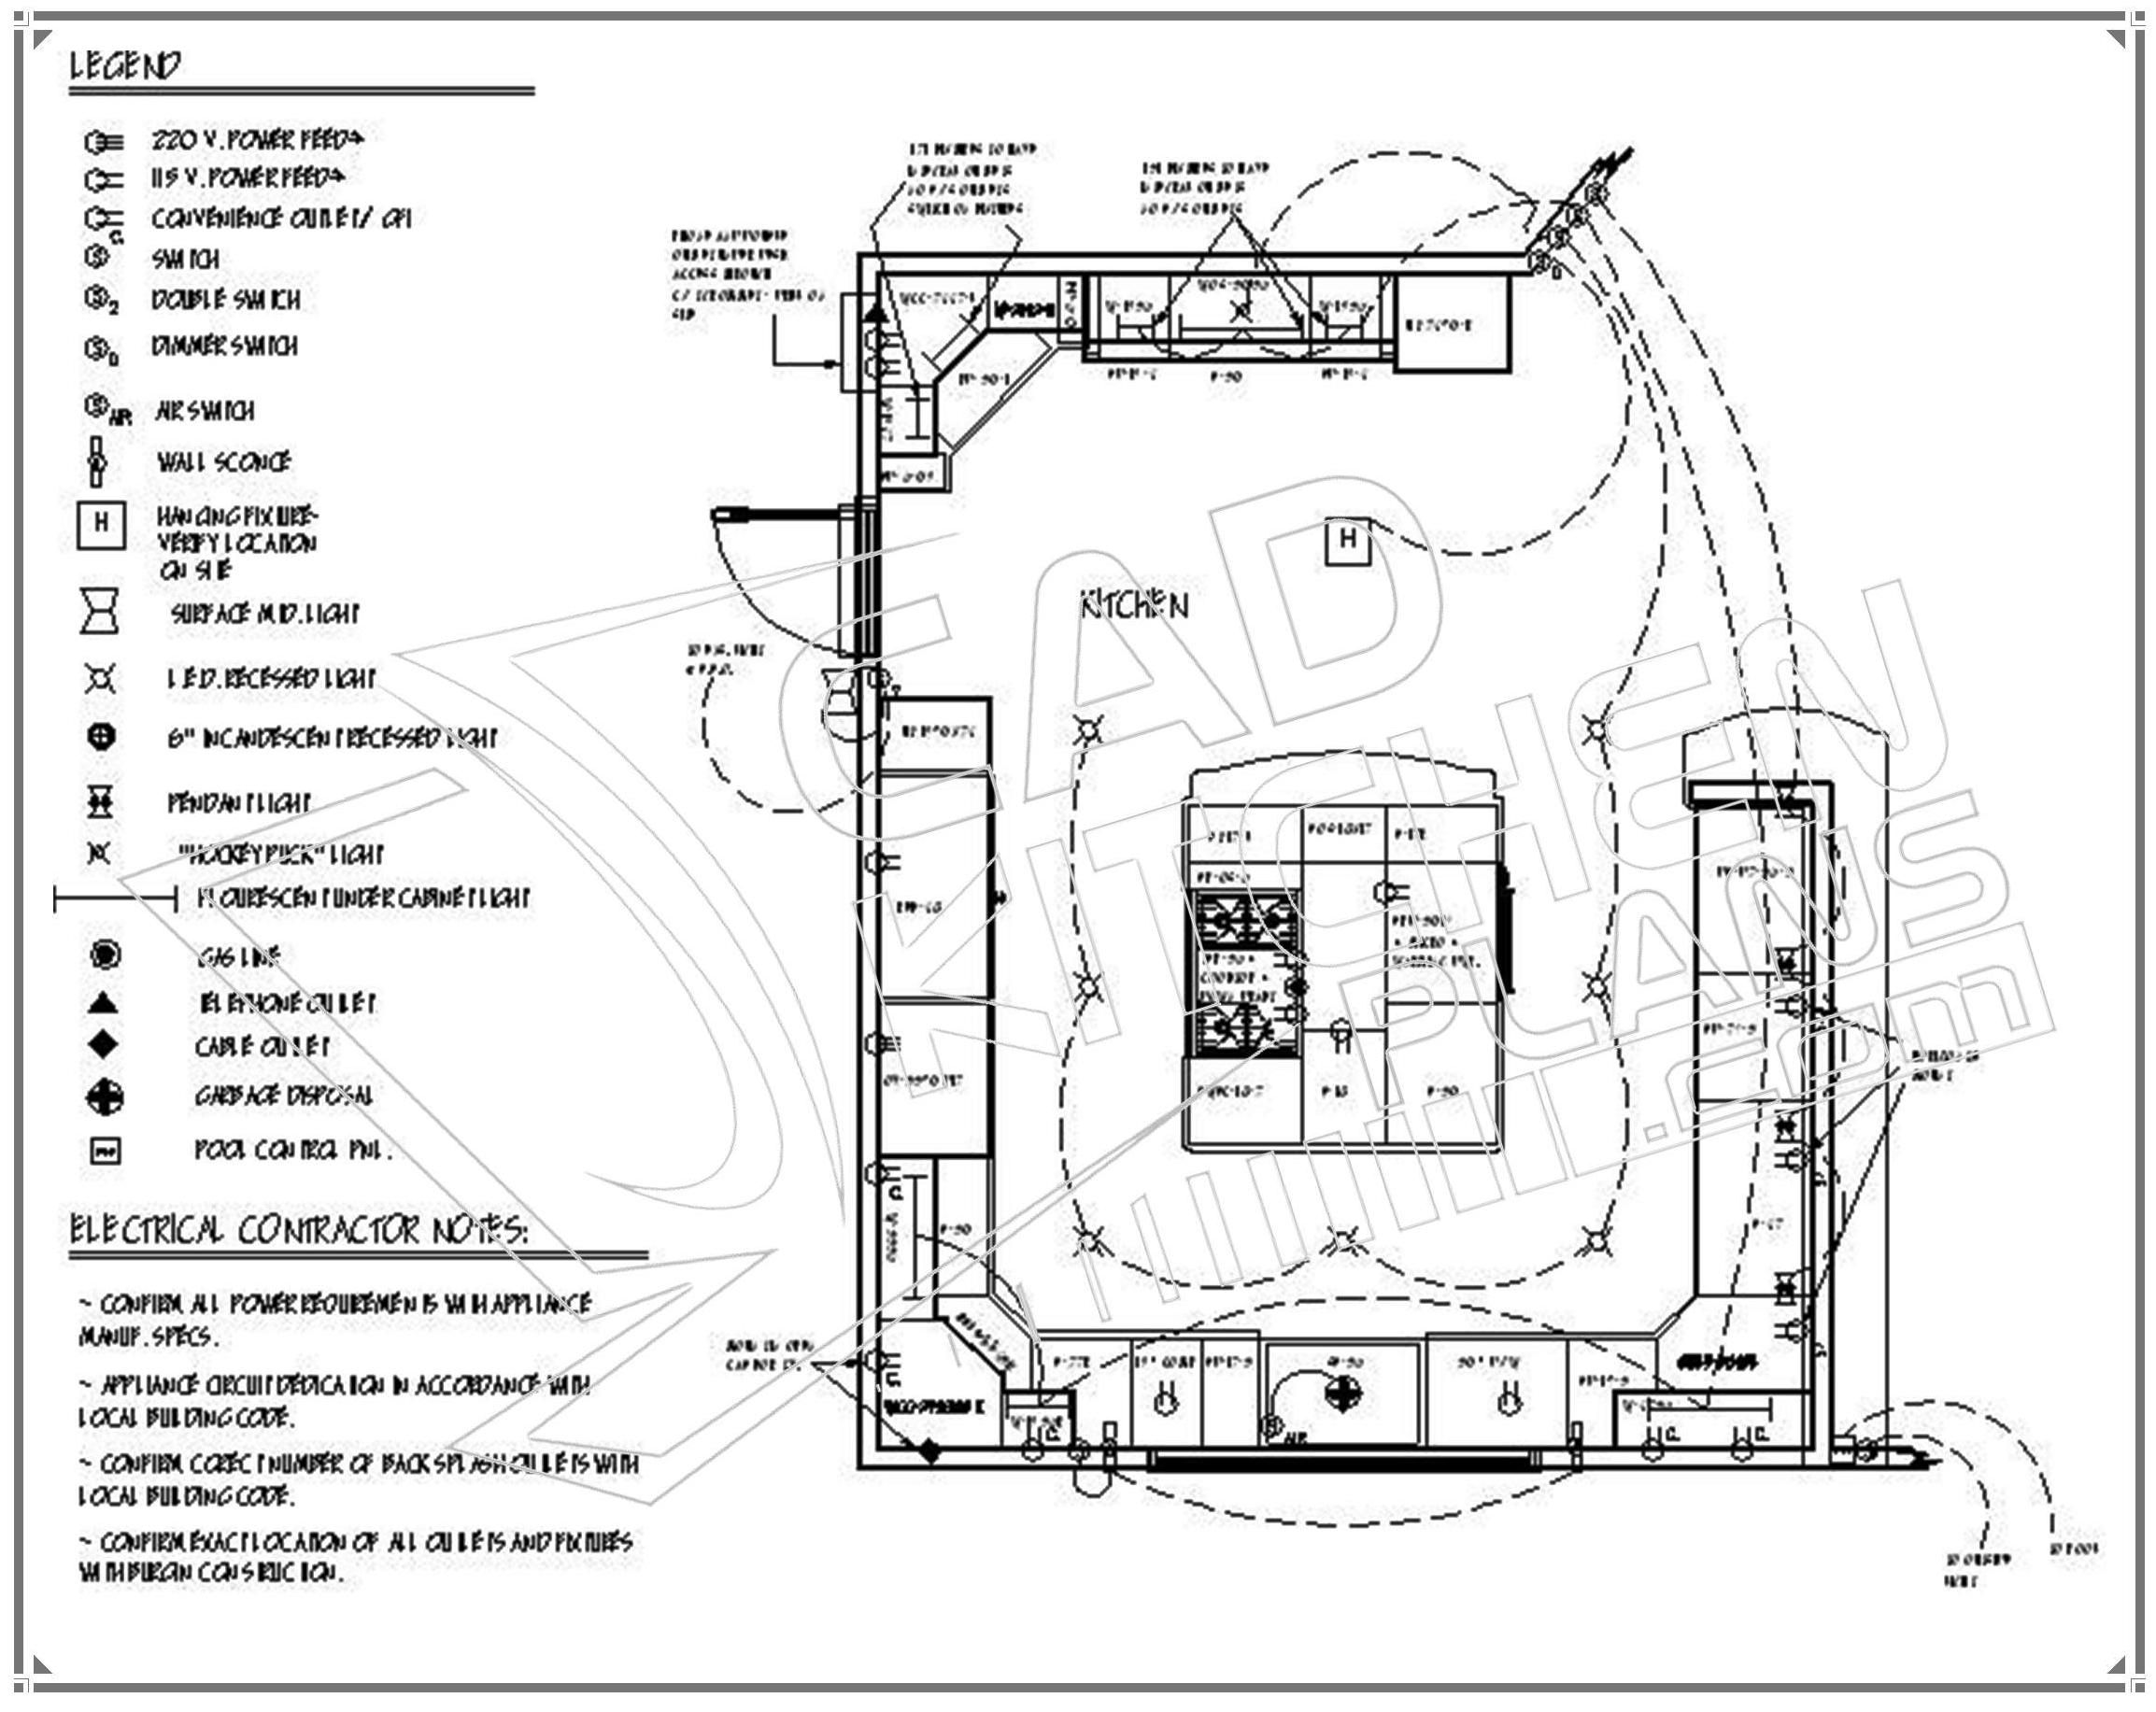 hight resolution of we are giving you some detailed information on restaurant kitchen floor plans some tips and promotional ideas description from kitchend500 com